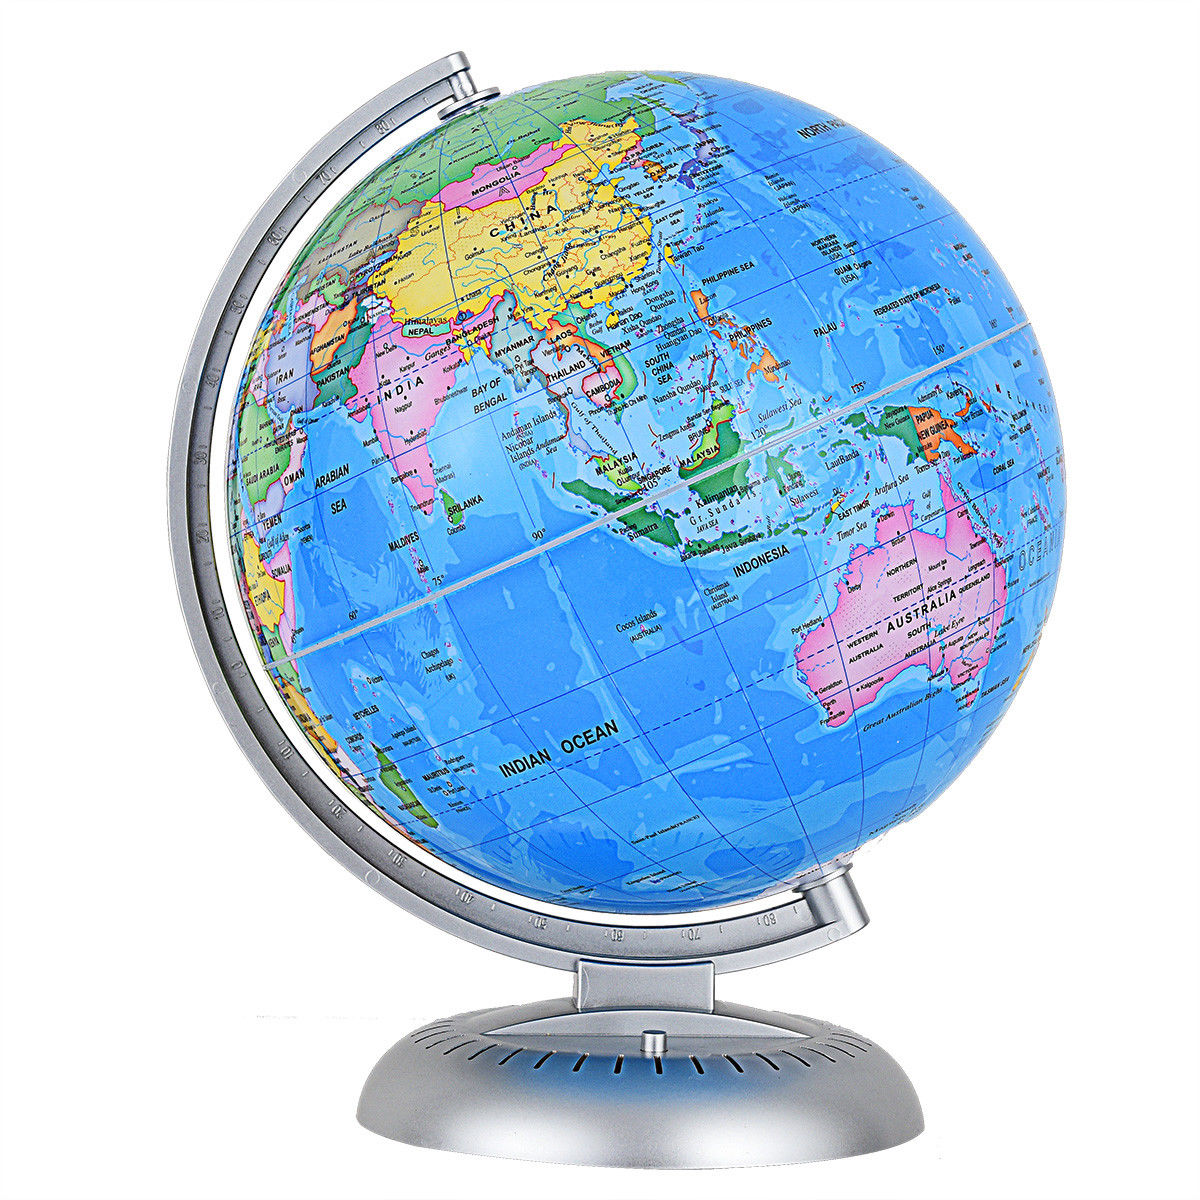 Costway 8 Illuminated World Globe Up To Date W Stand Built In Led Night View Kids